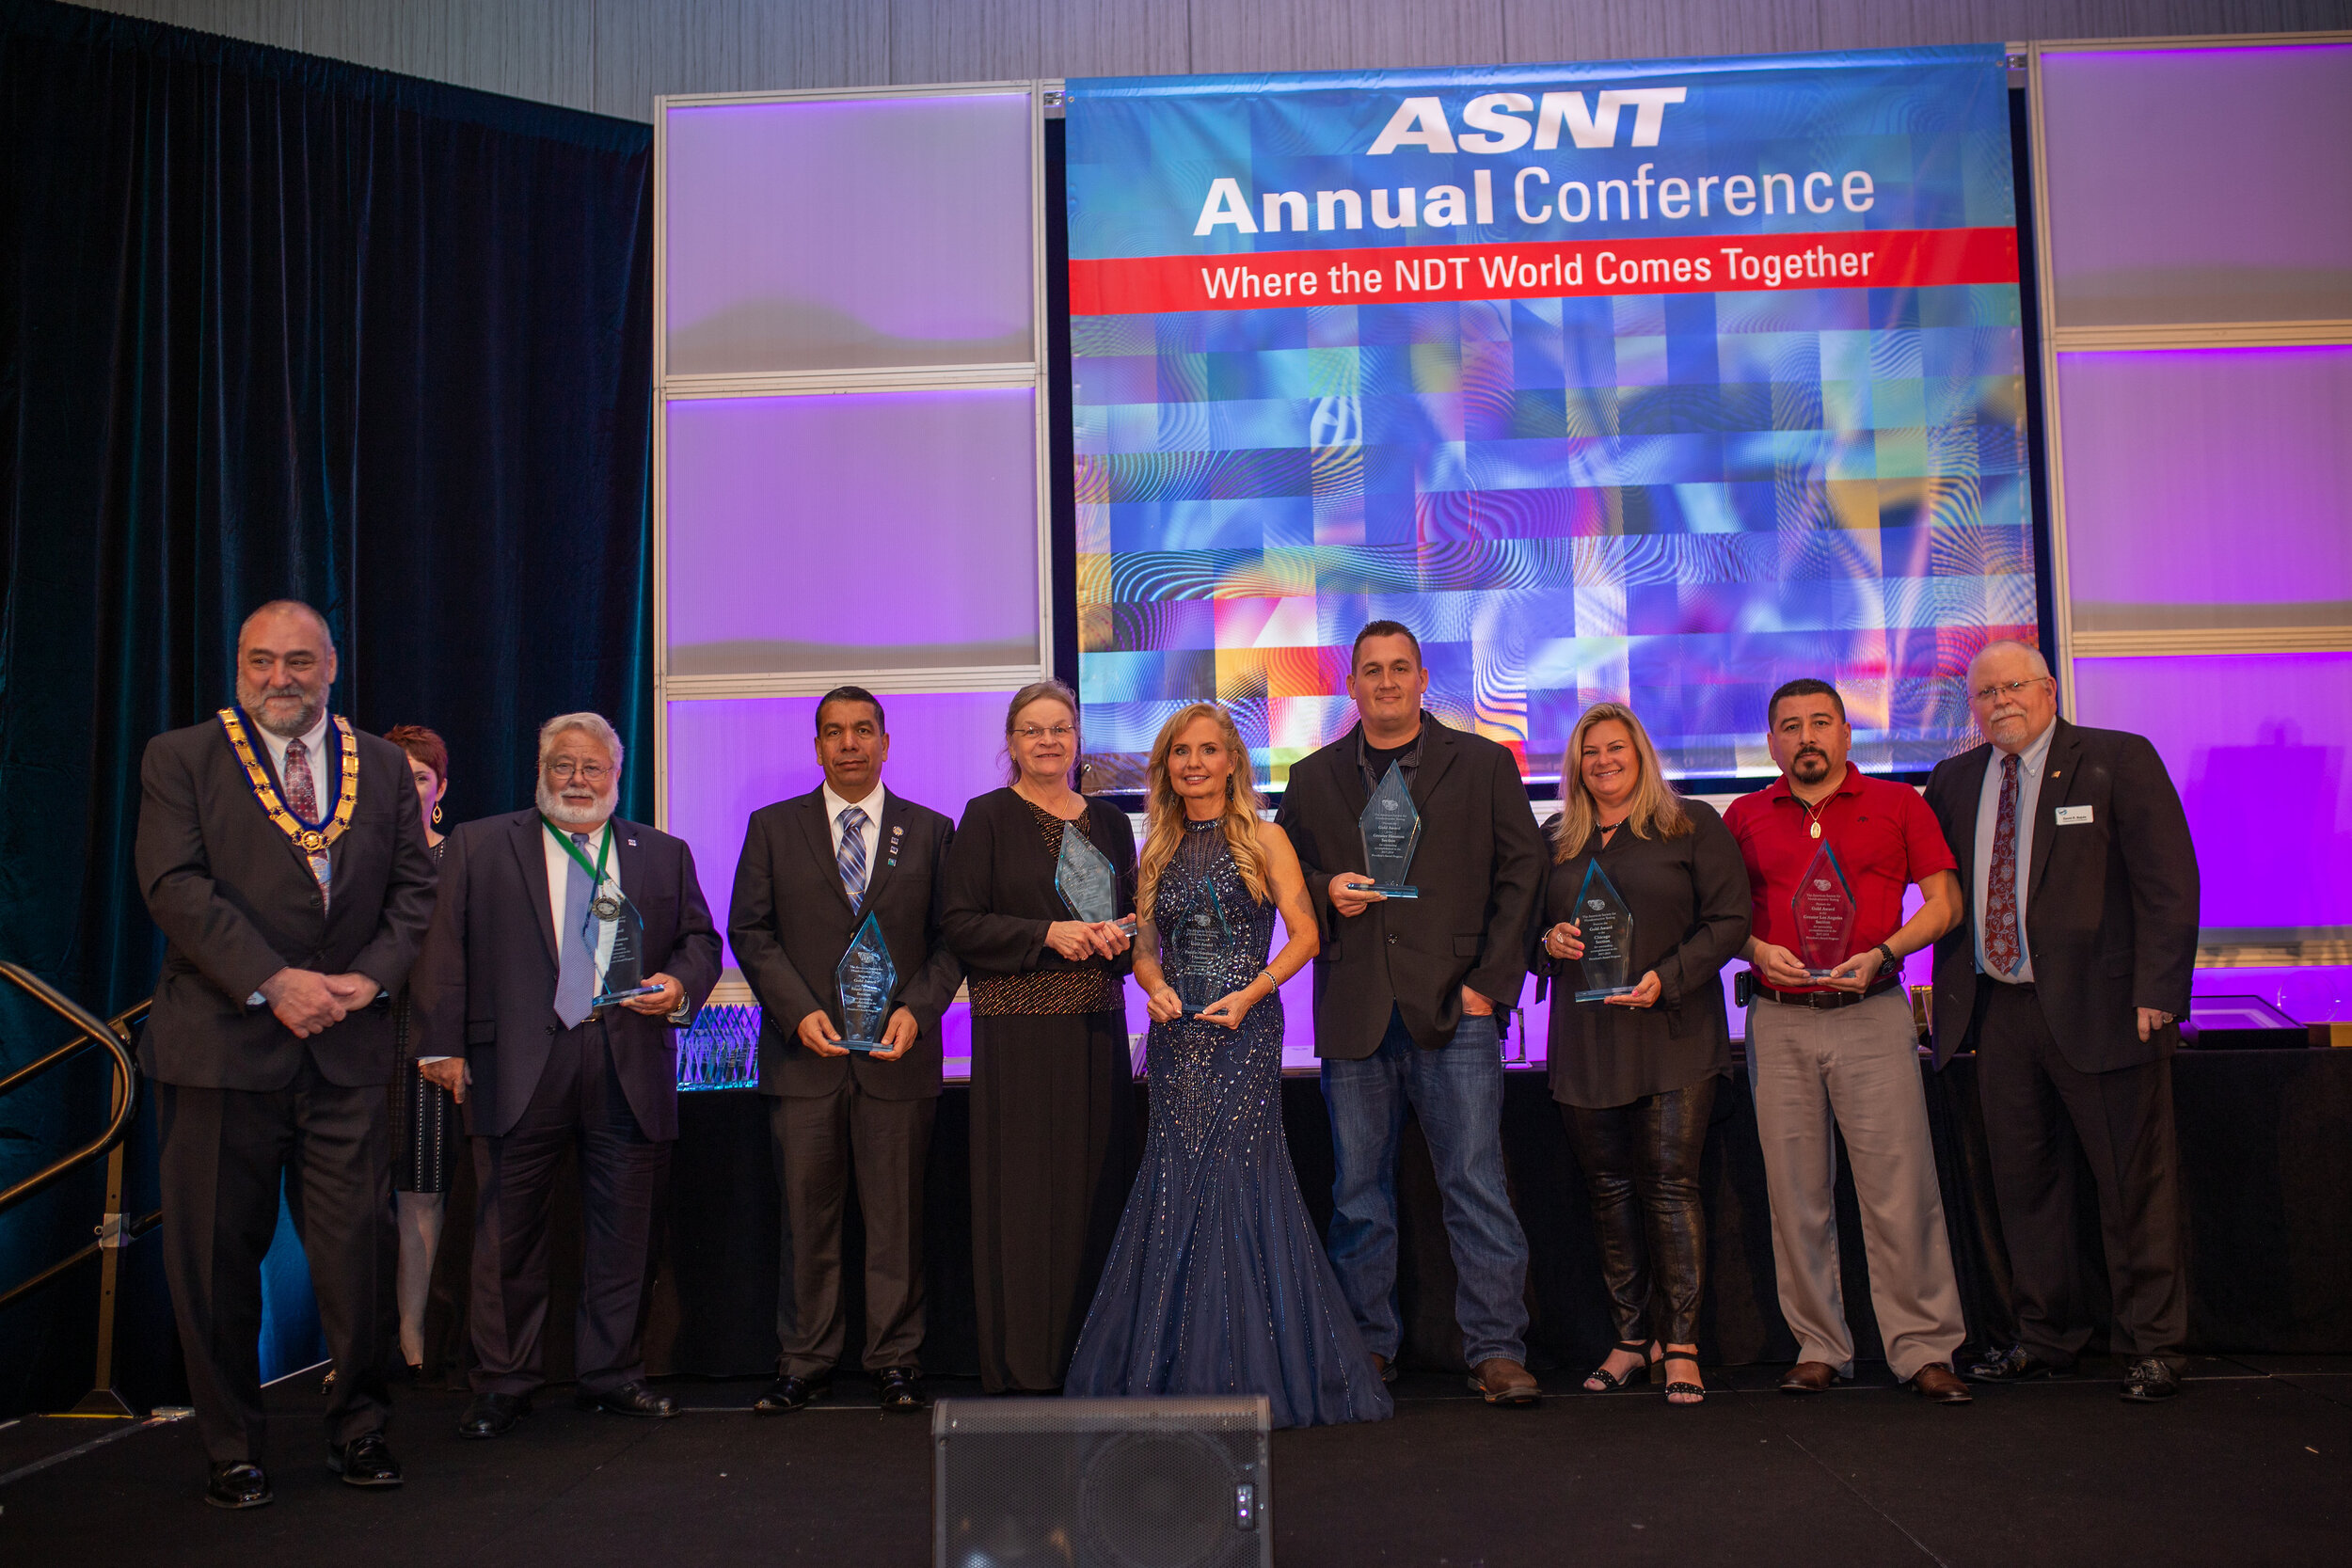 GHASNT's John Huffman (fourth from right) accepts ASNT's Gold Award at the 2018 ASNT Annual Conference.